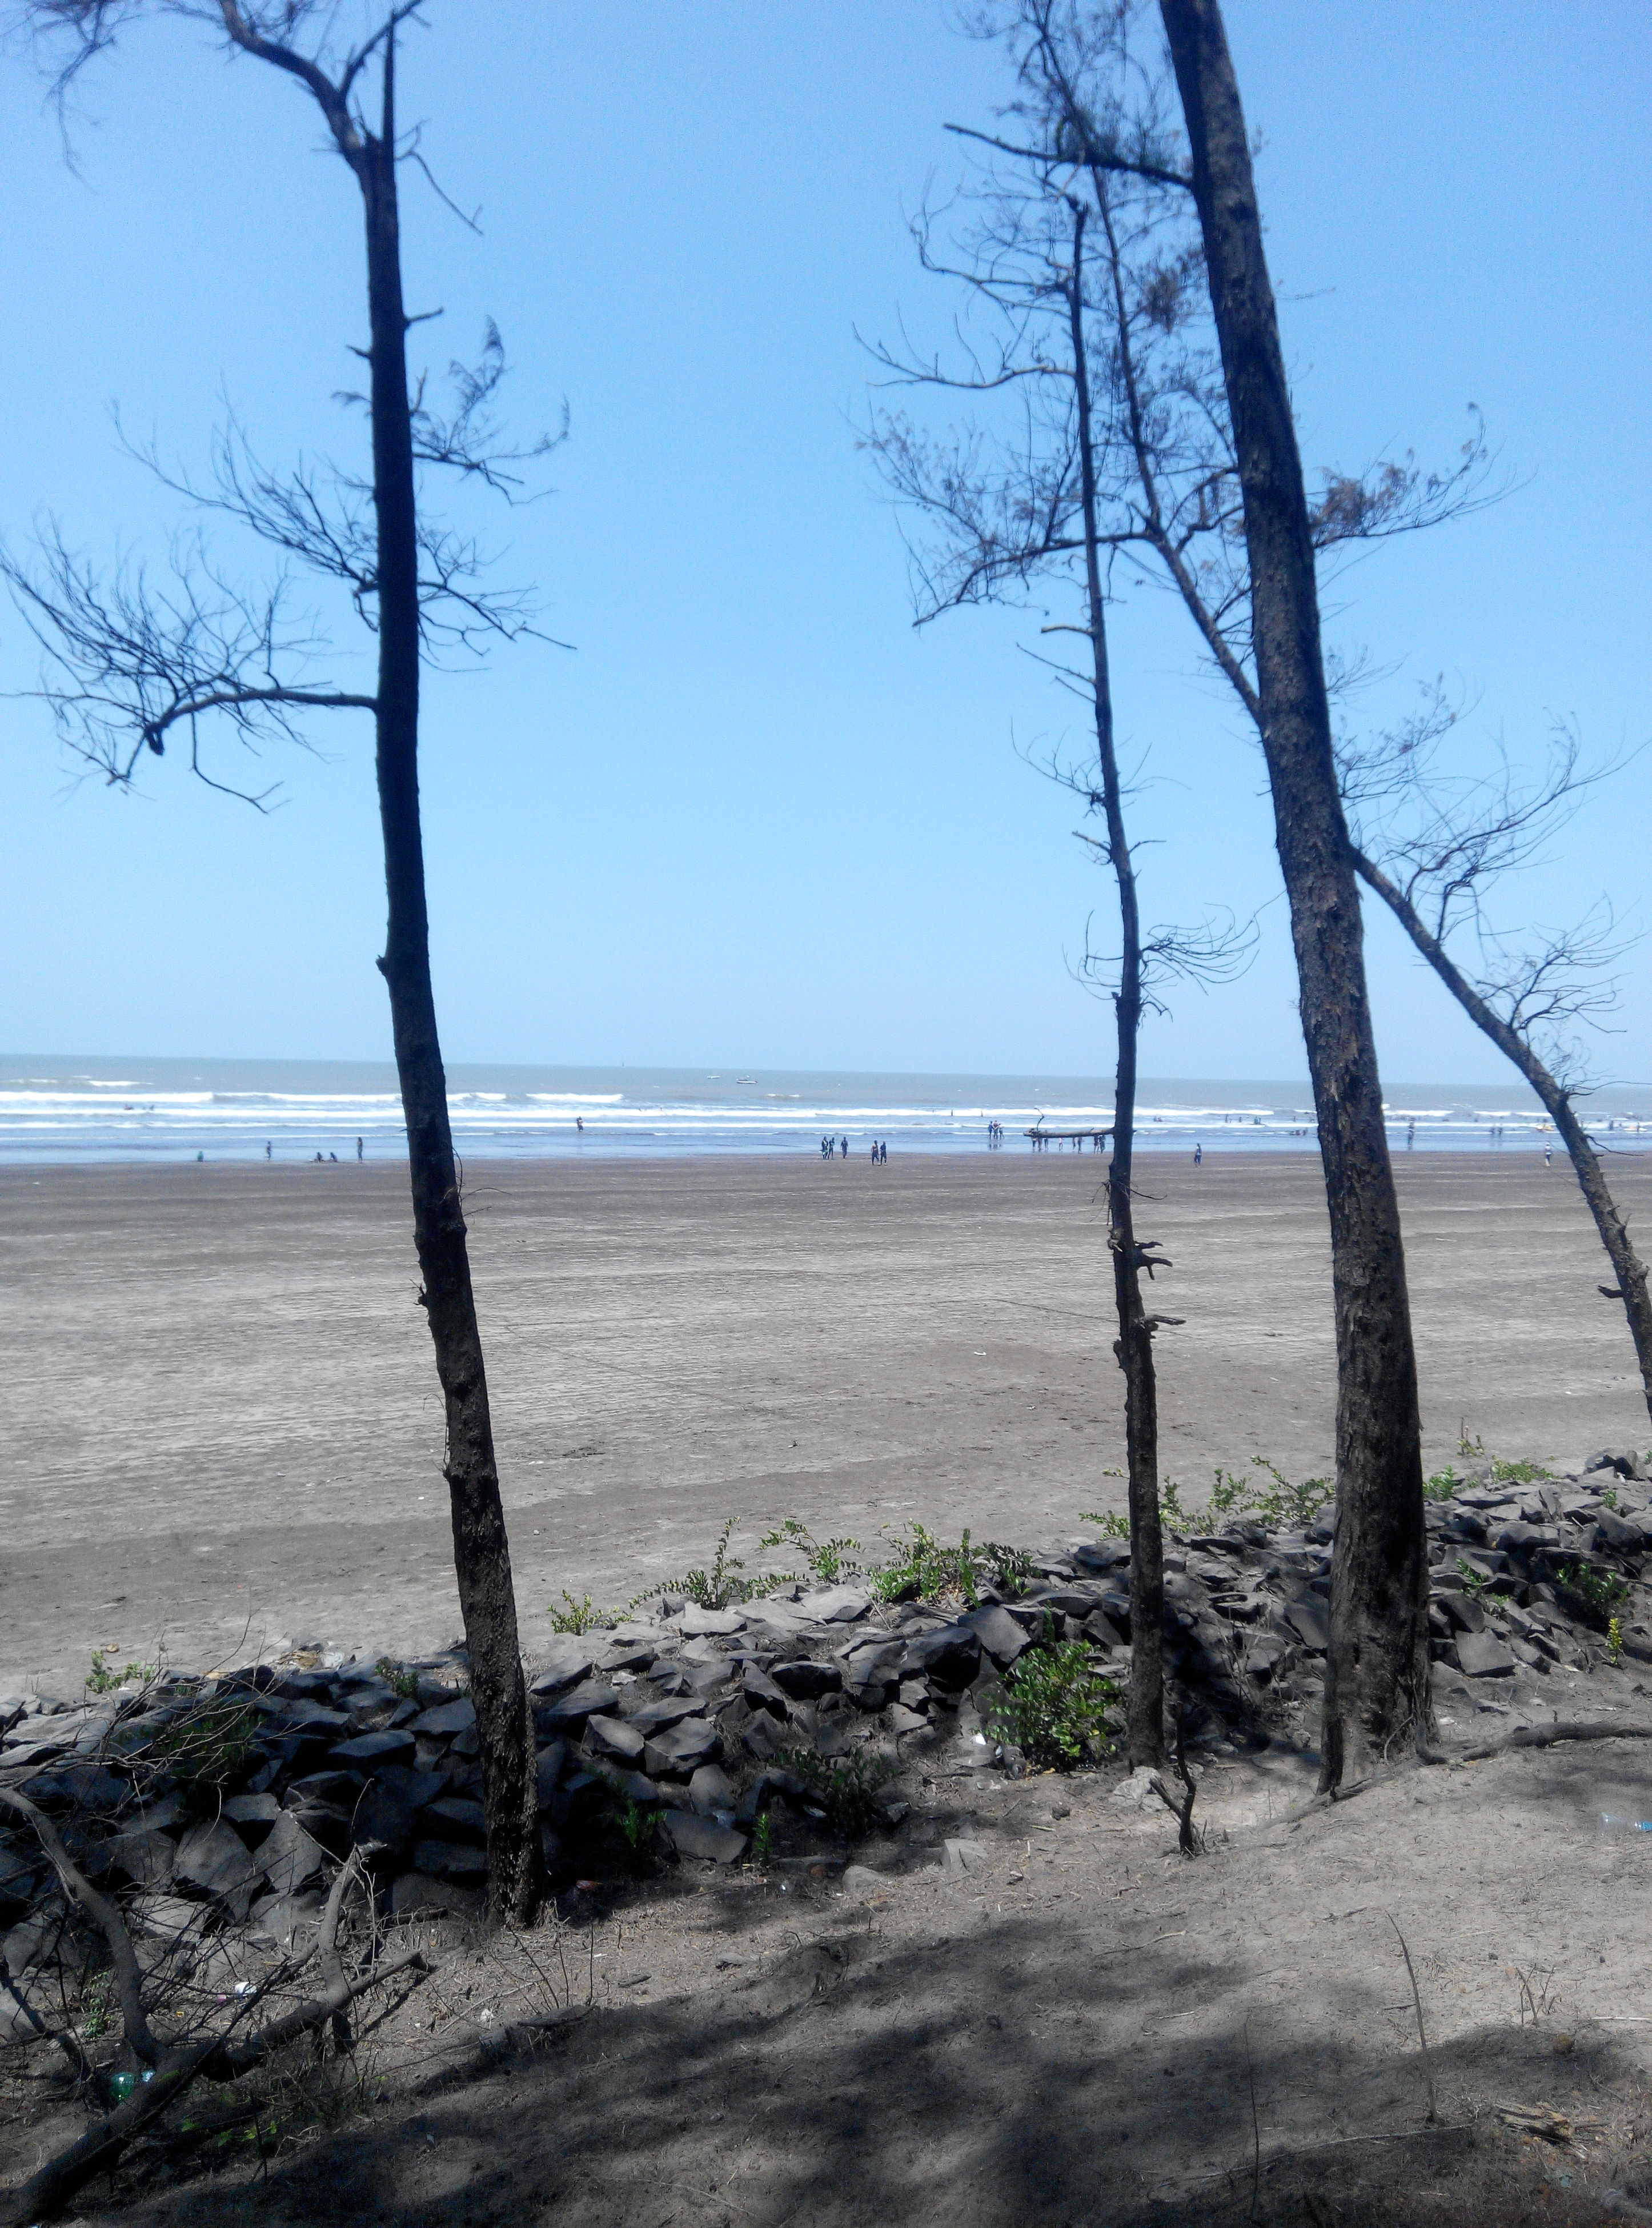 sea, water, tranquility, tranquil scene, horizon over water, clear sky, beach, tree, scenics, tree trunk, shore, beauty in nature, nature, sand, branch, bare tree, blue, sky, shadow, sunlight